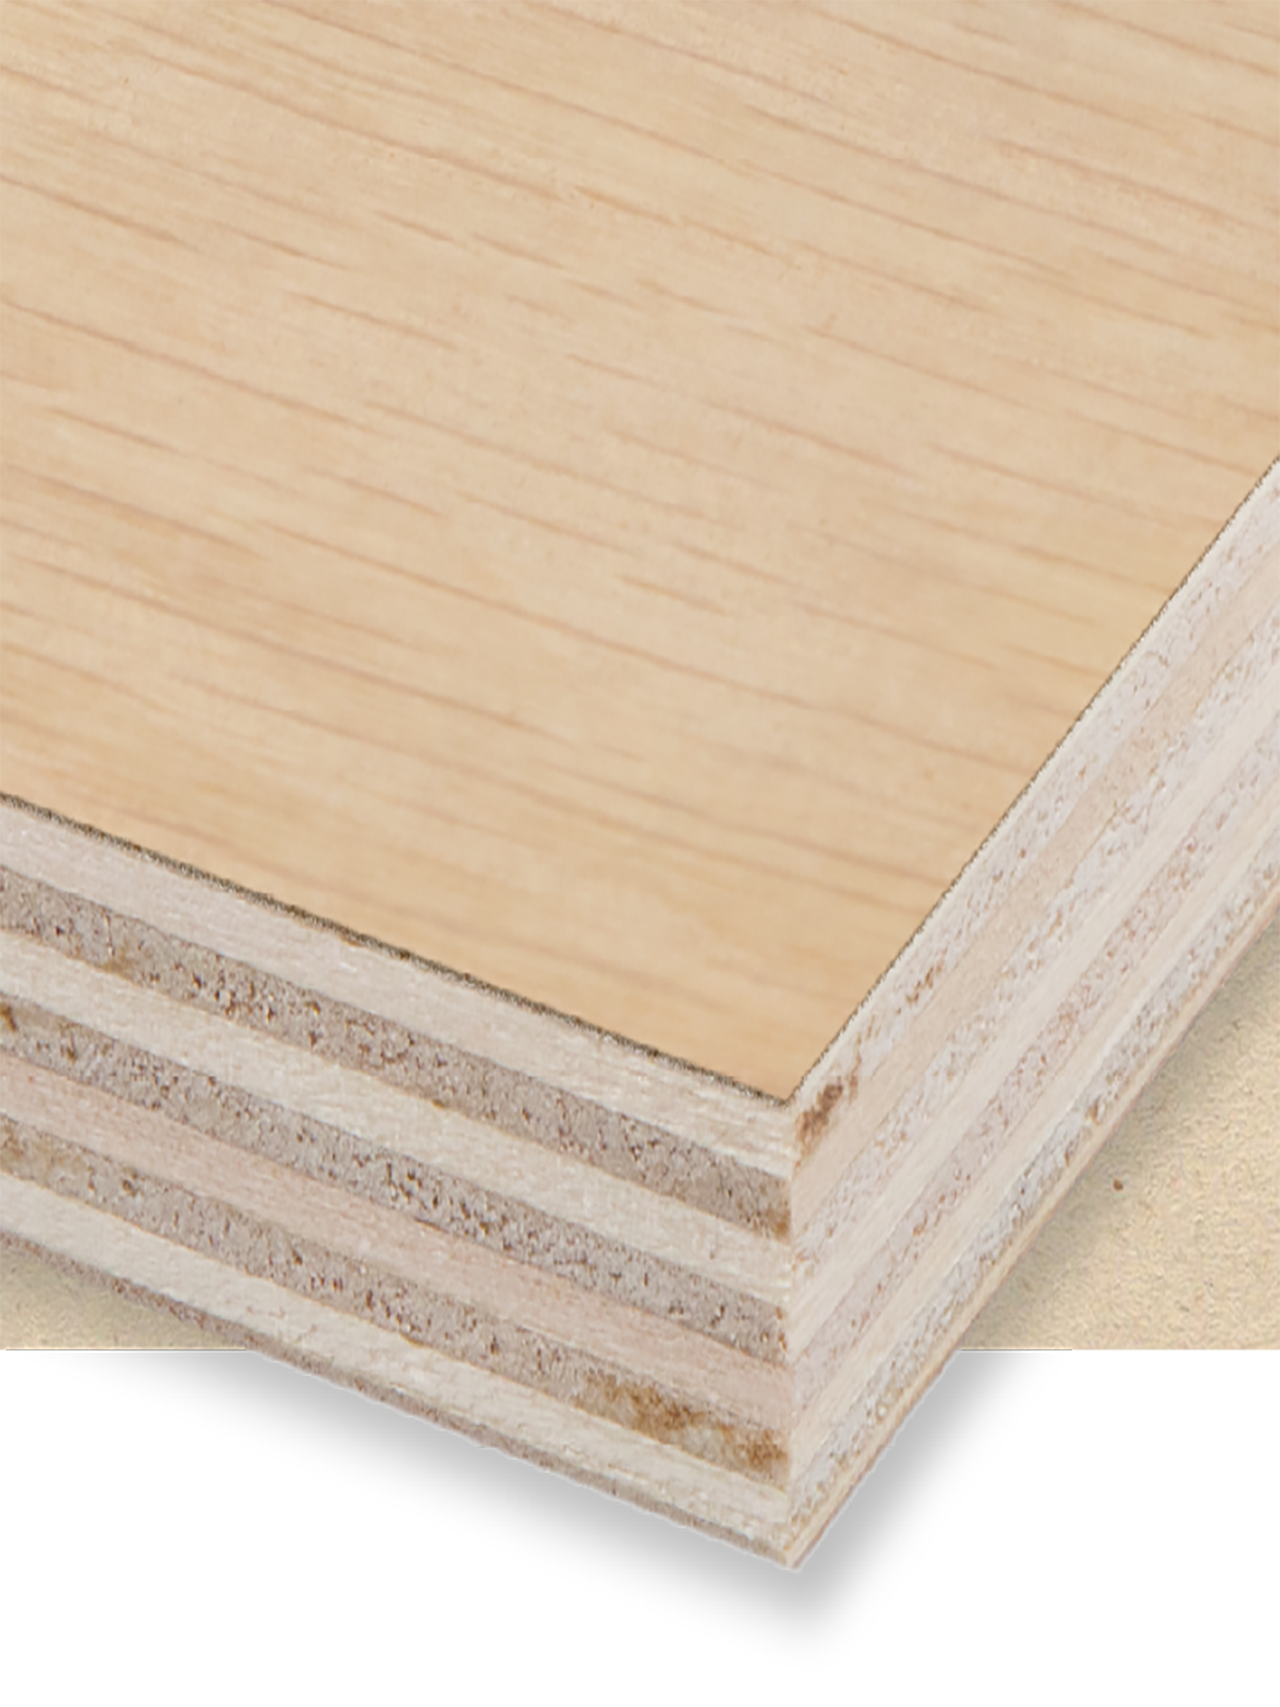 Veneered Poplar Plywood E1